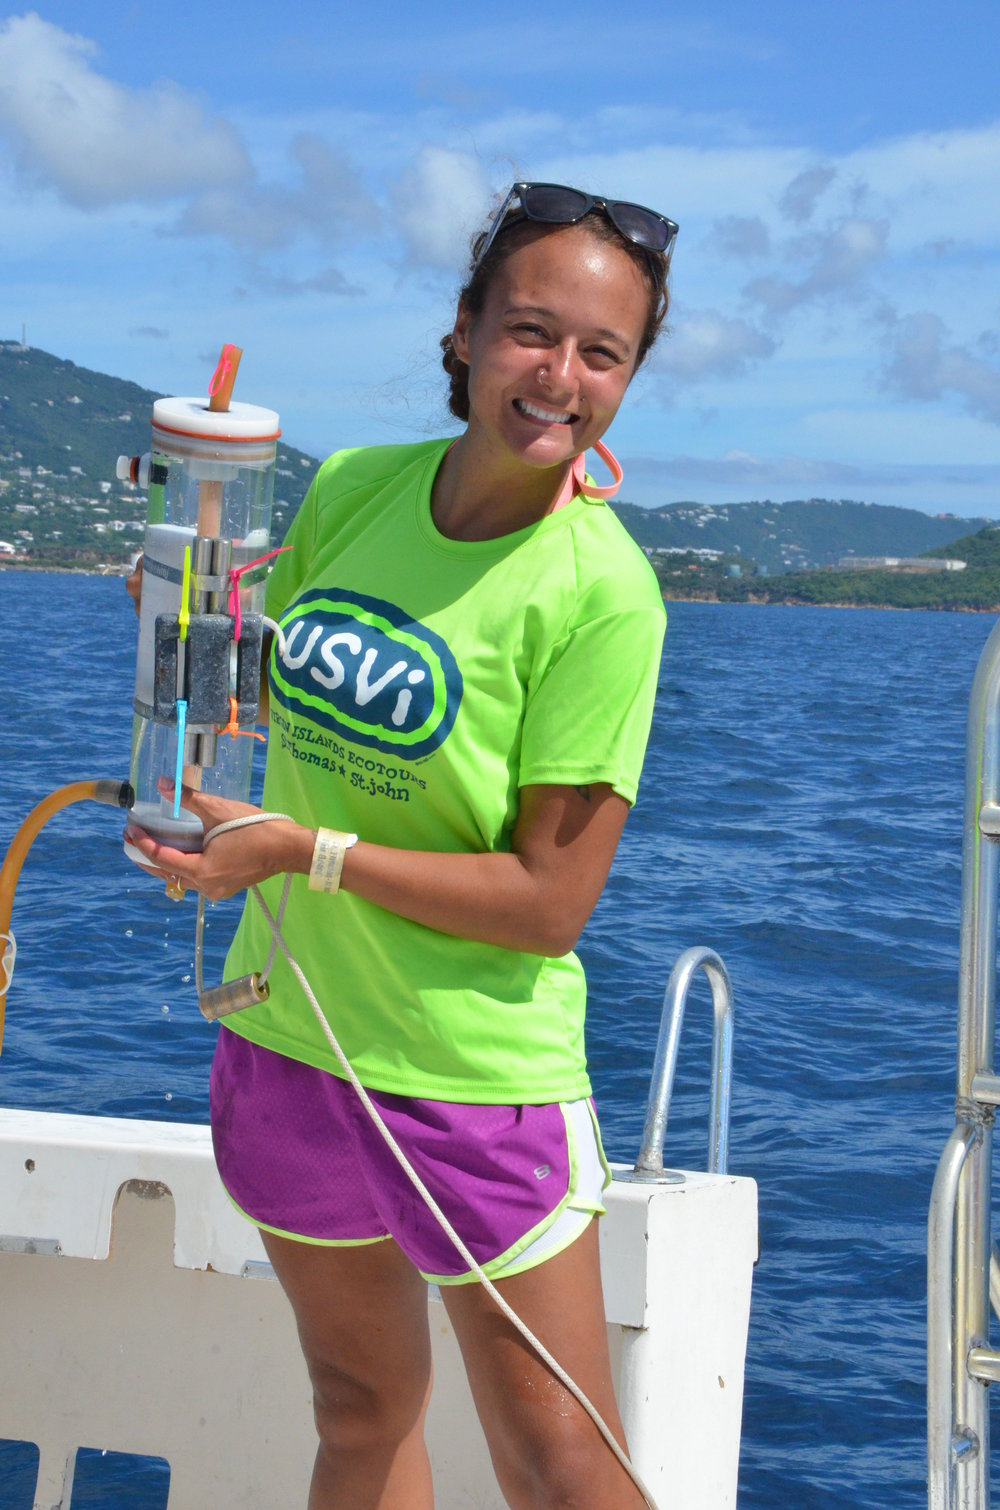 Mara prepares to deploy a Niskin which tests for nutrients, bacteria and total suspended solids in the water.